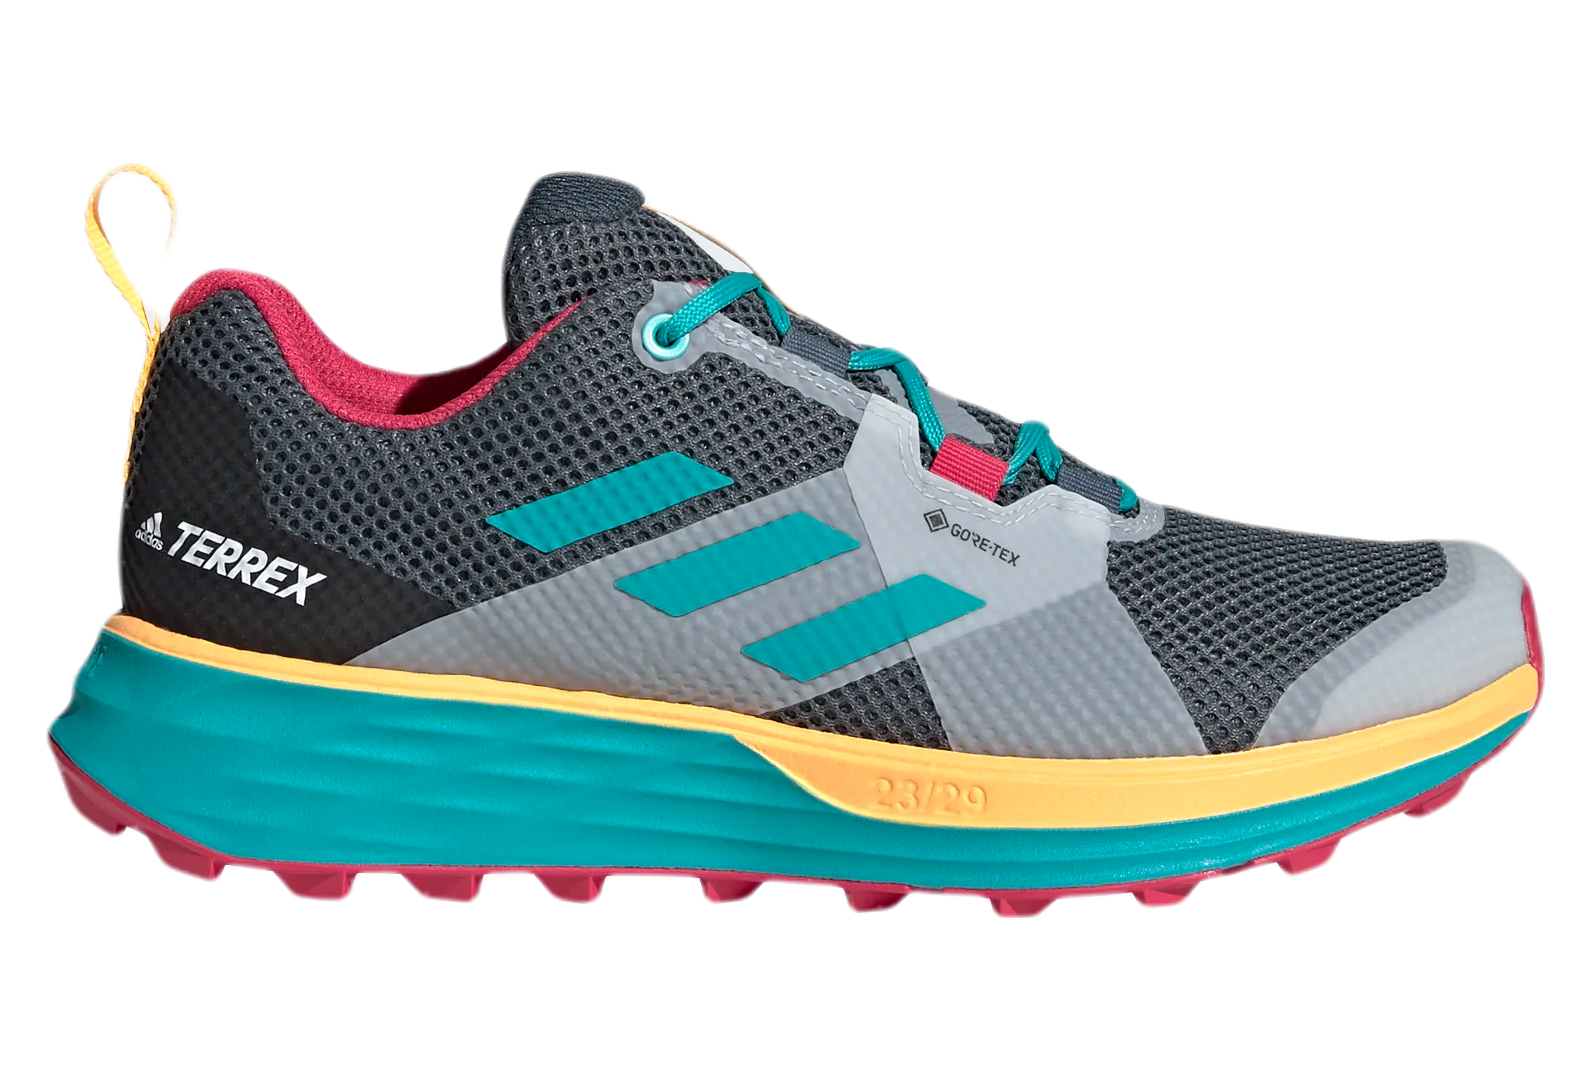 Adidas Terrex Two Gore-Tex Trail Running Shoes Gray Blue Pink